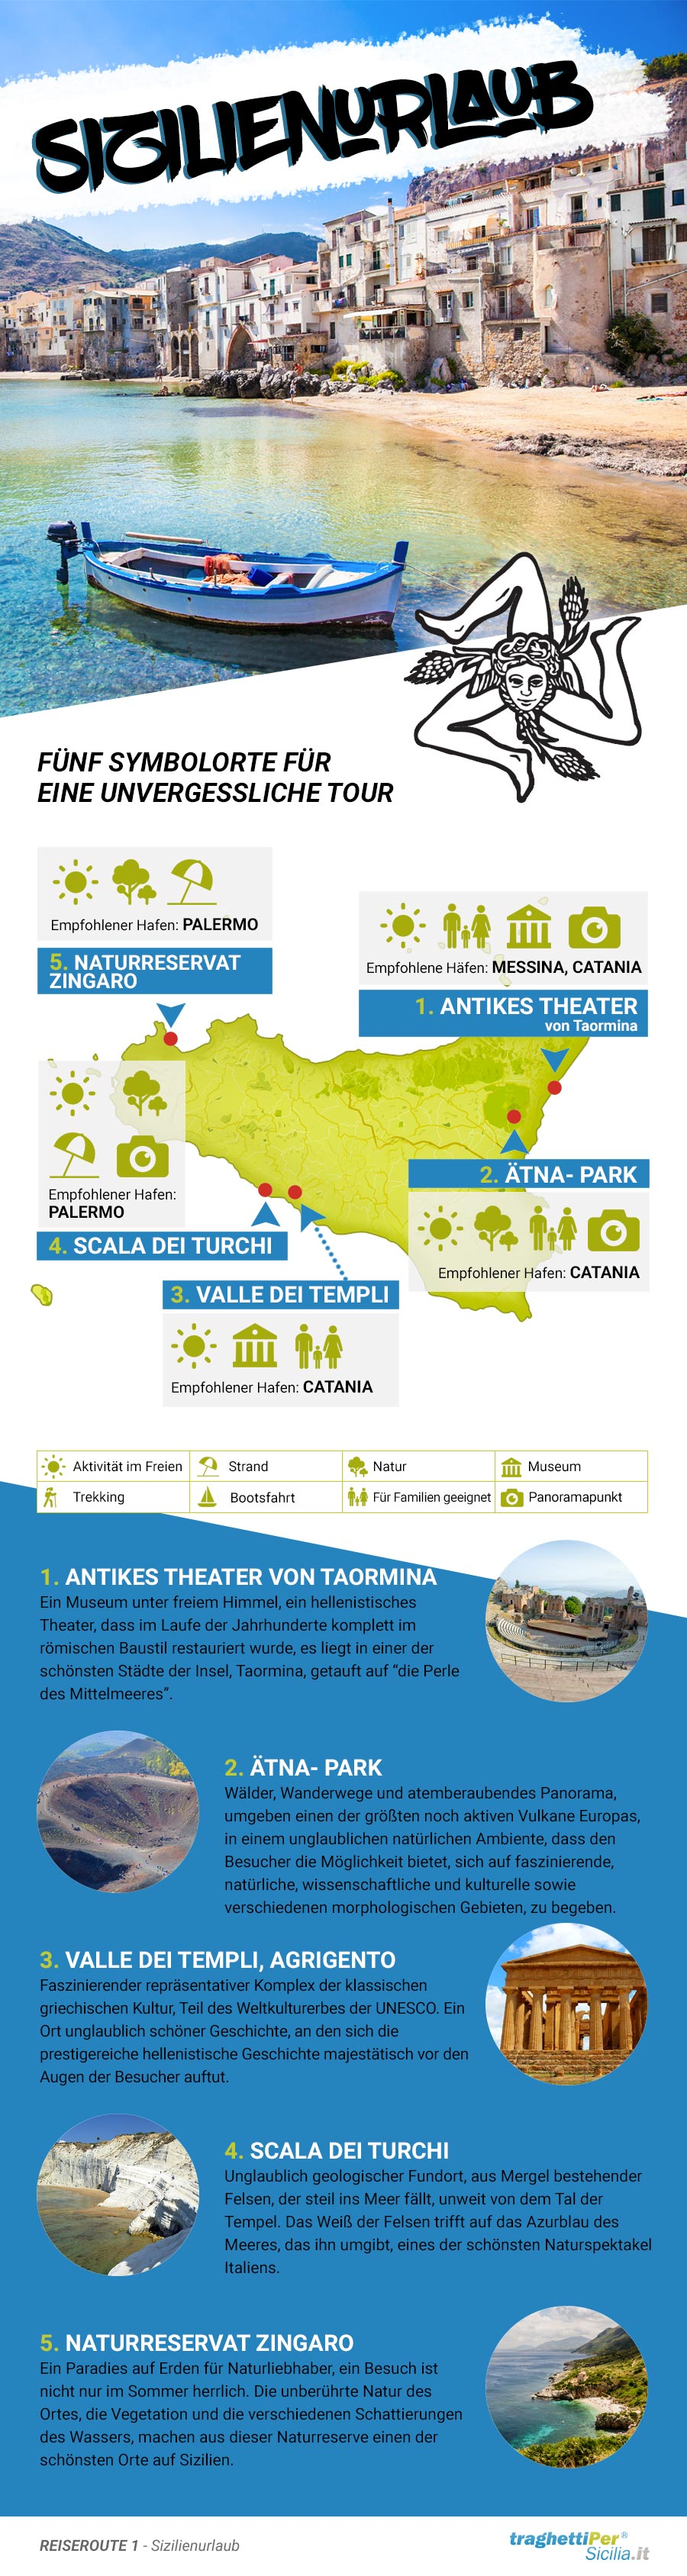 TRAVEL ITALIA Infografik Sizilien